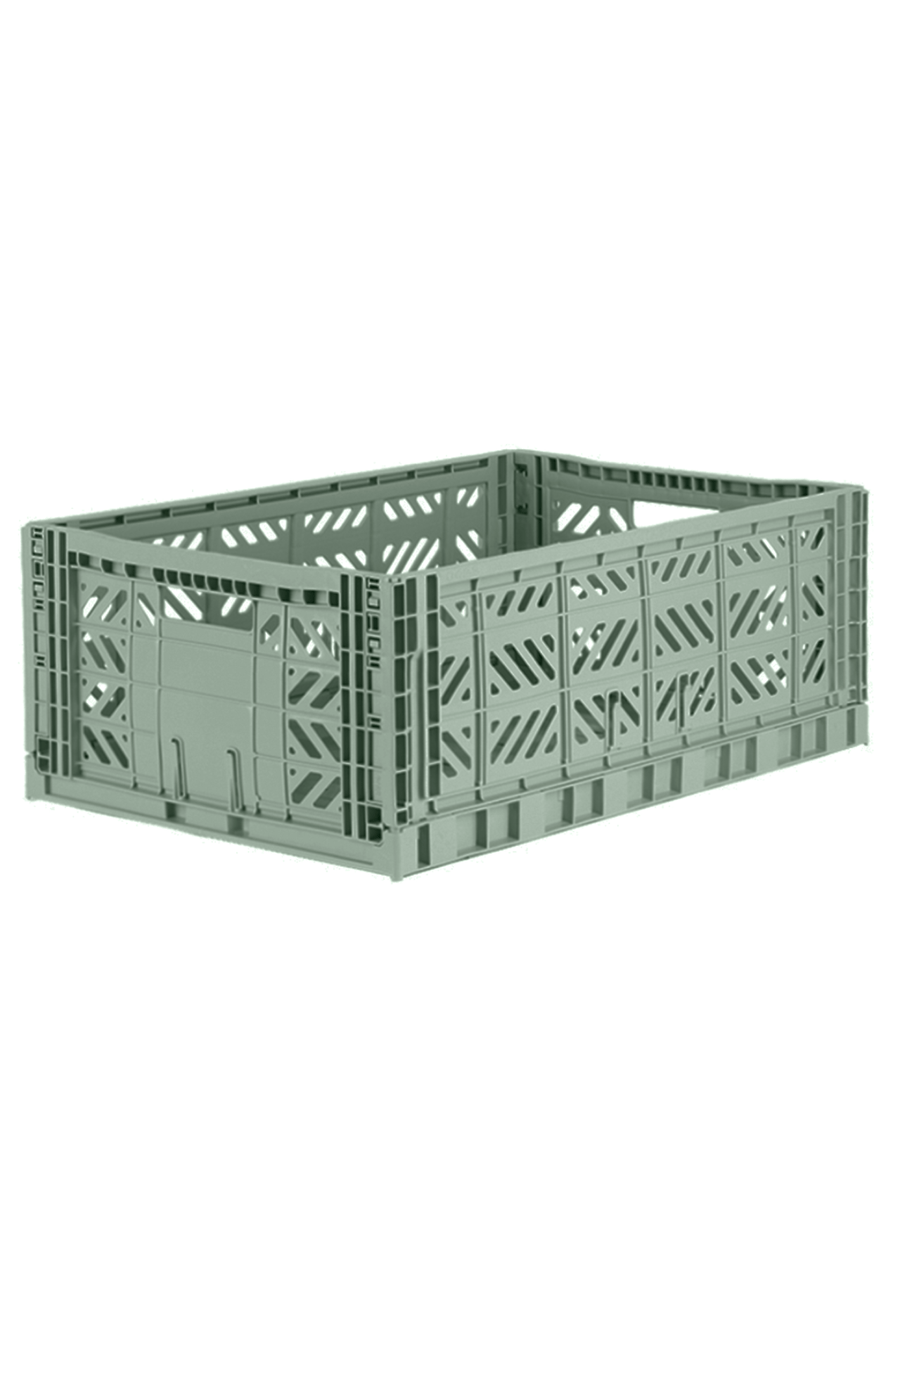 AyKasa Maxi Folding Crate - Almond Green